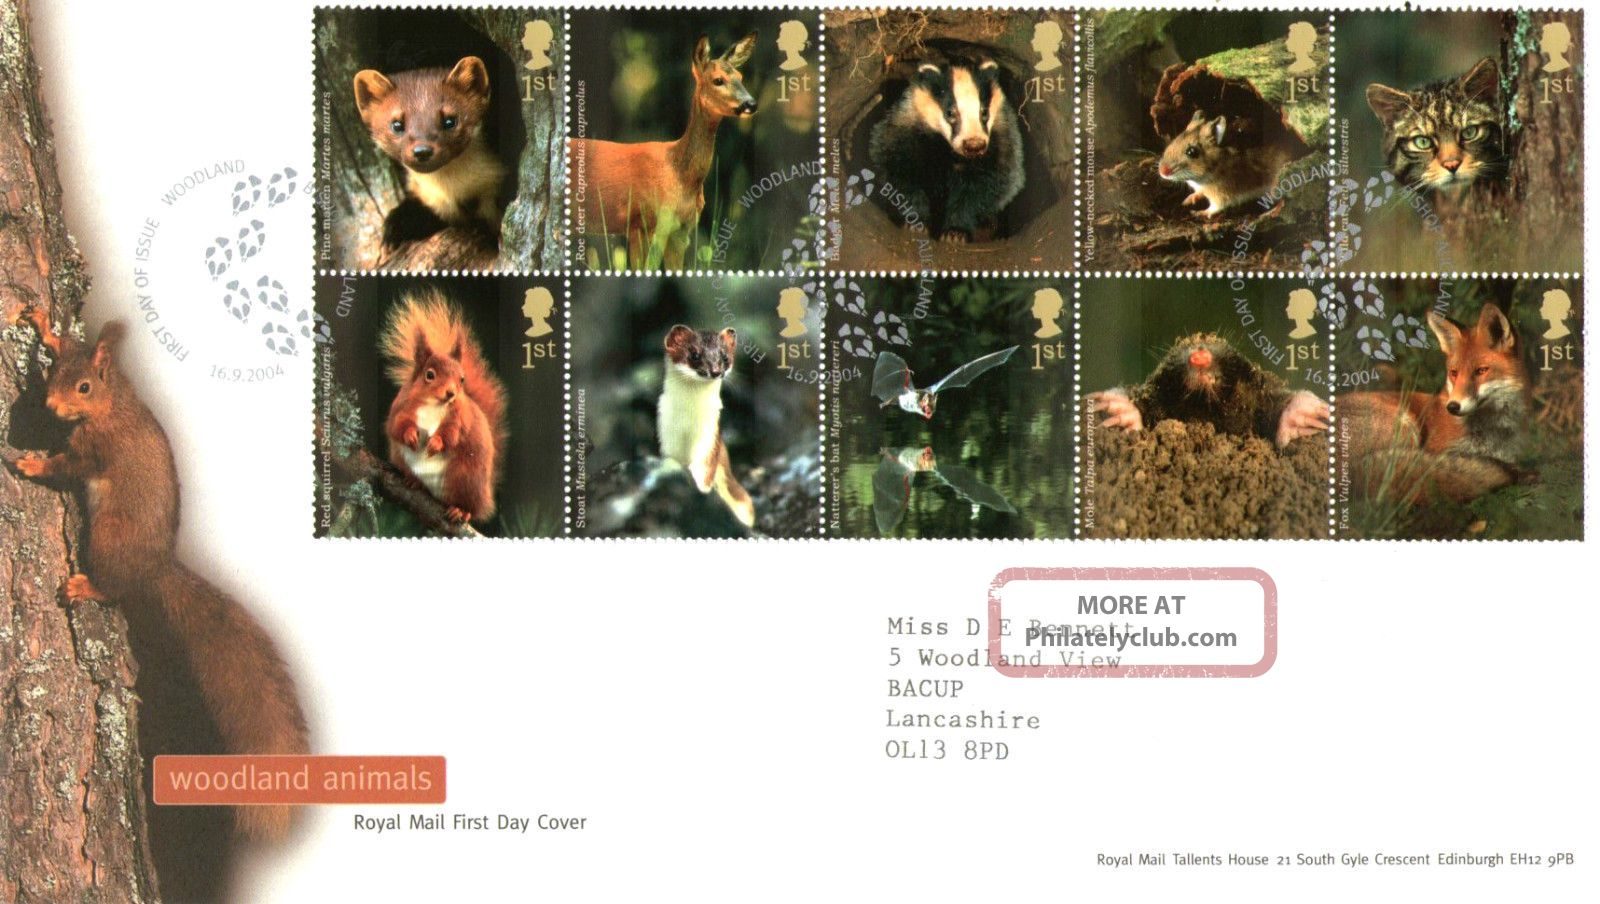 16 September 2004 Woodland Animals Rm First Day Cover Bishop Auckland Shs Animal Kingdom photo